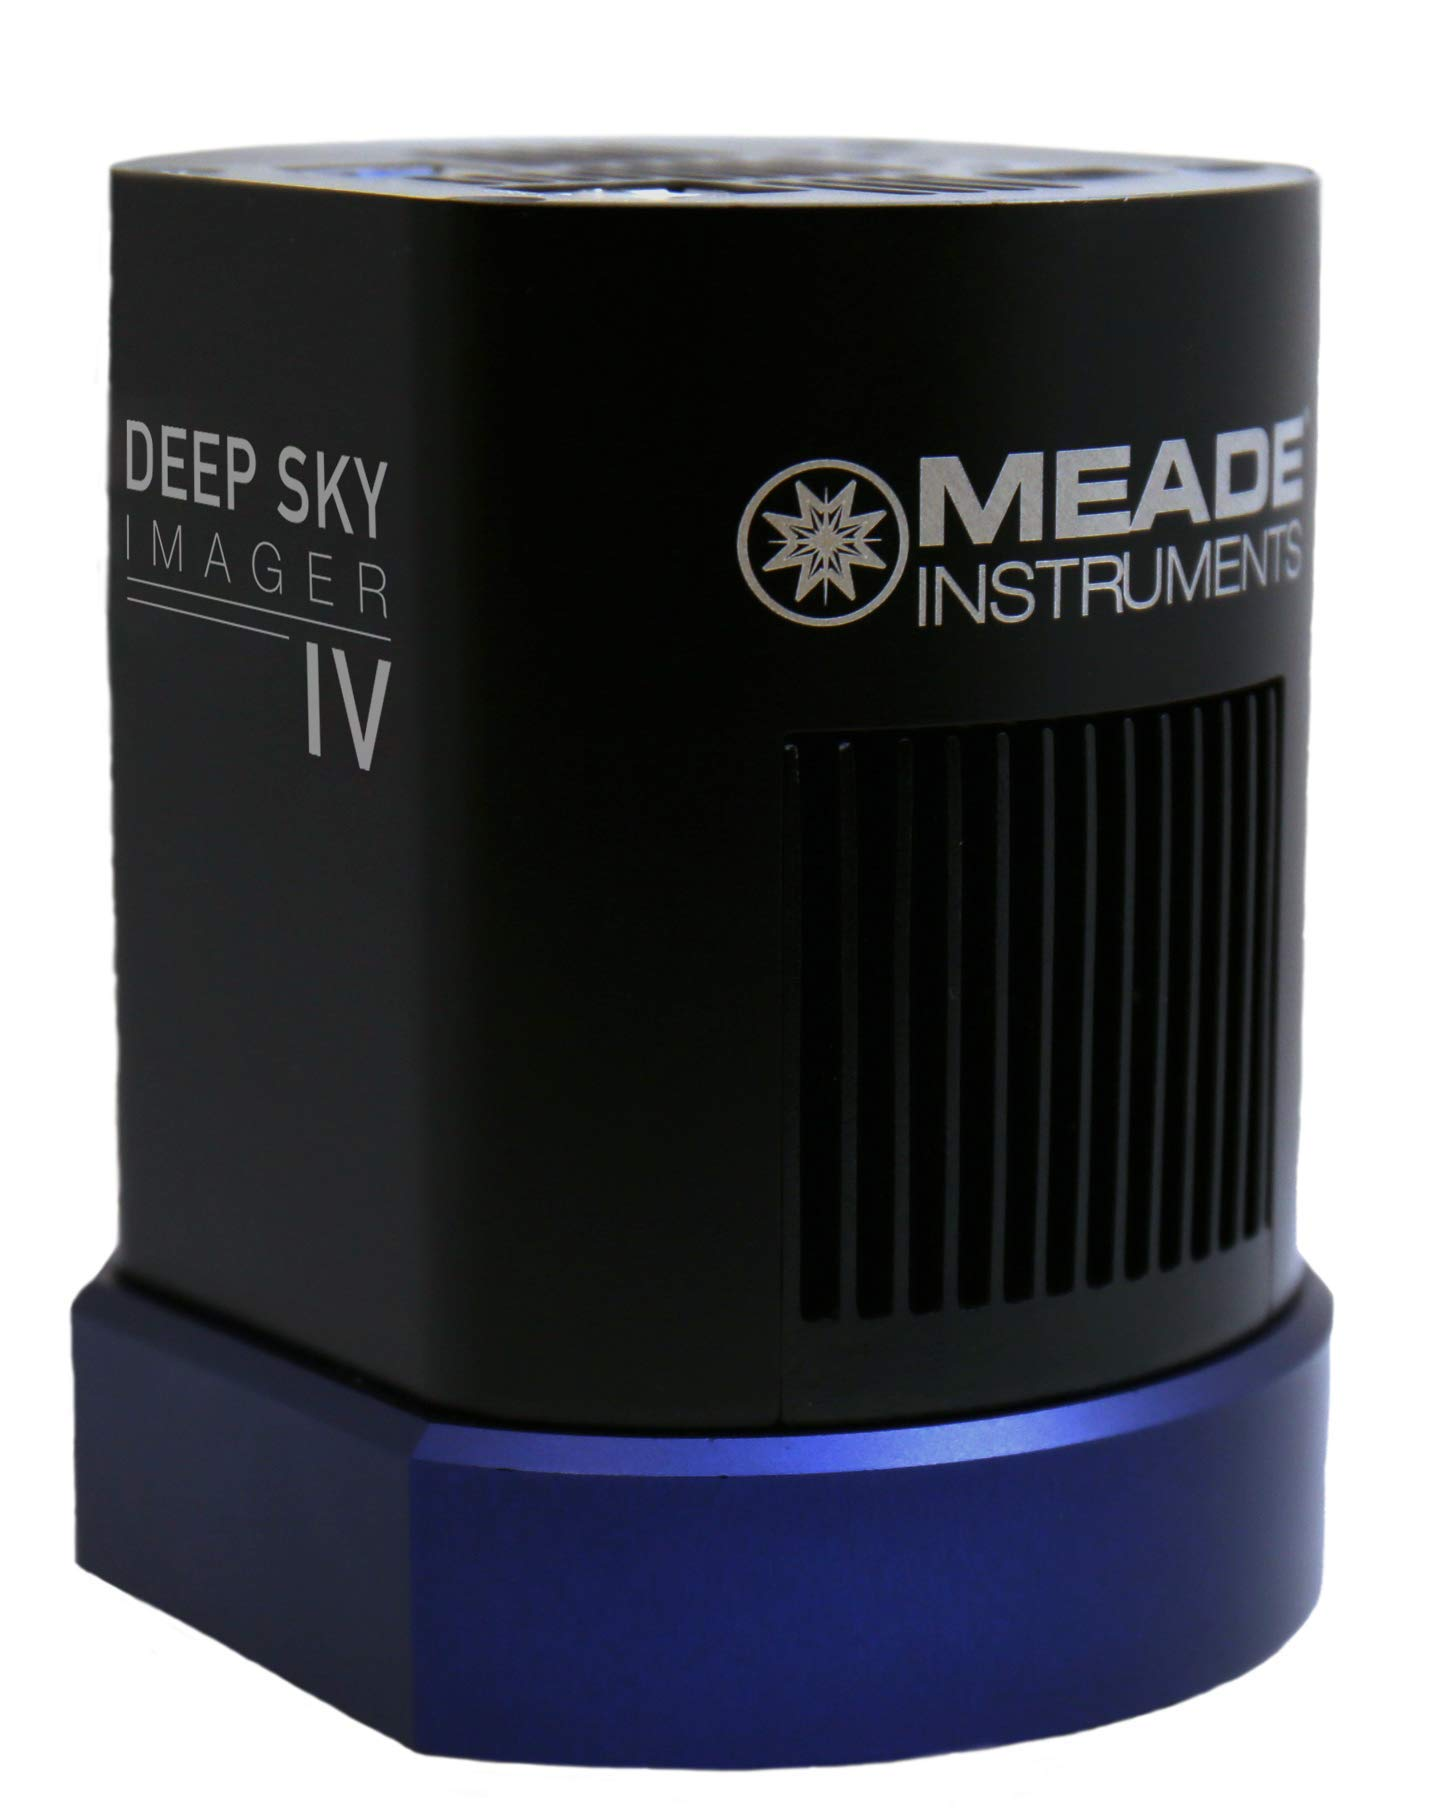 Meade Instruments 633001 Deep Sky Imager IV Color by Meade Instruments